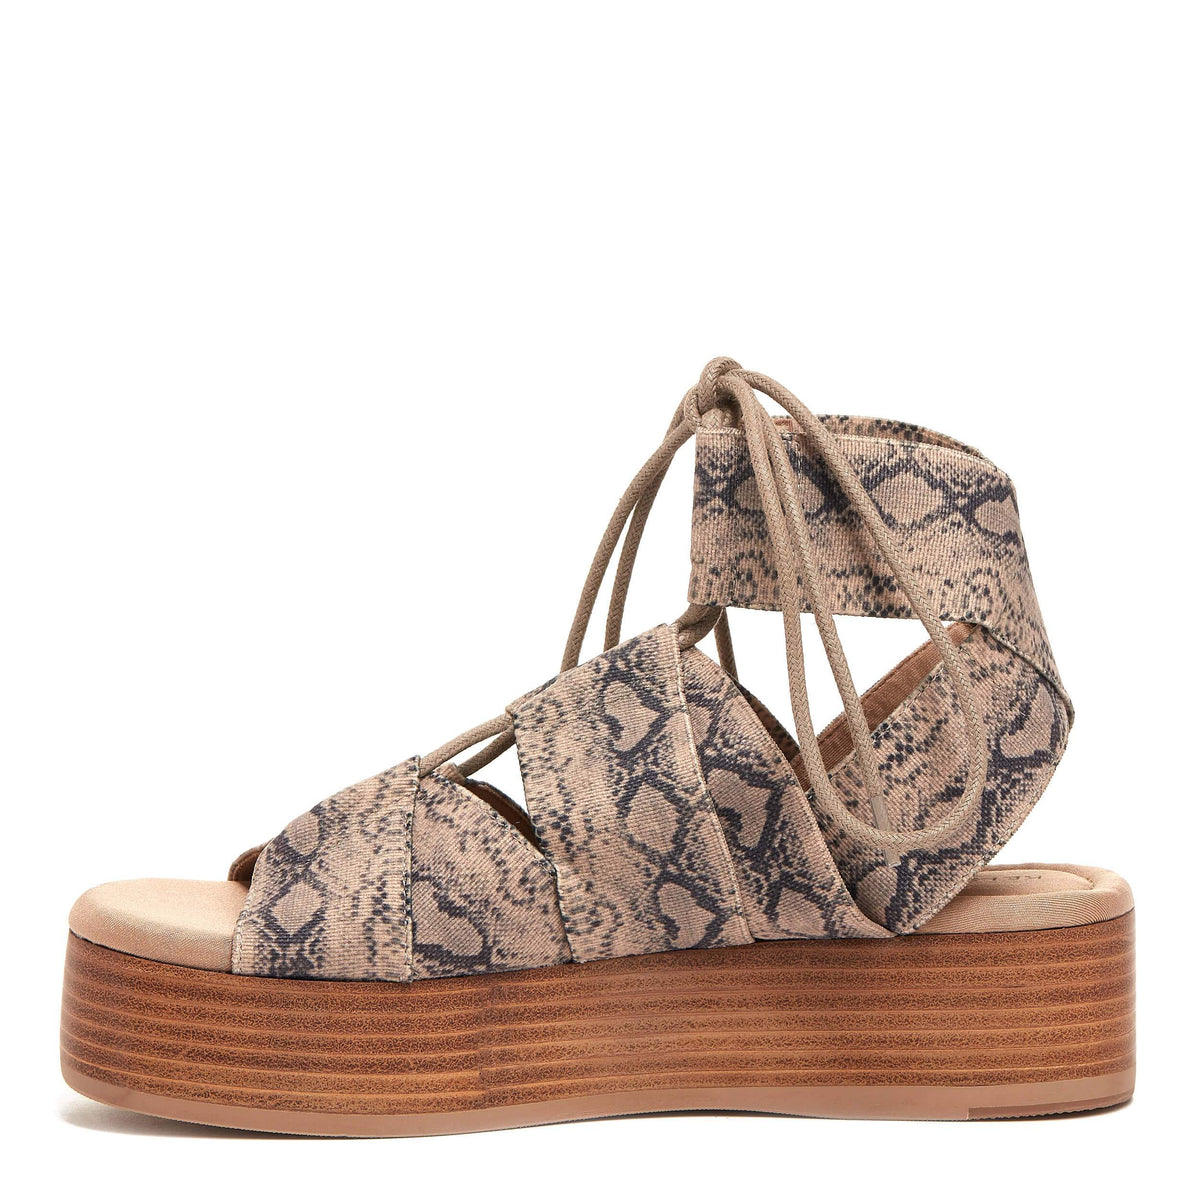 Decatur Snake Multi Platform Sandal